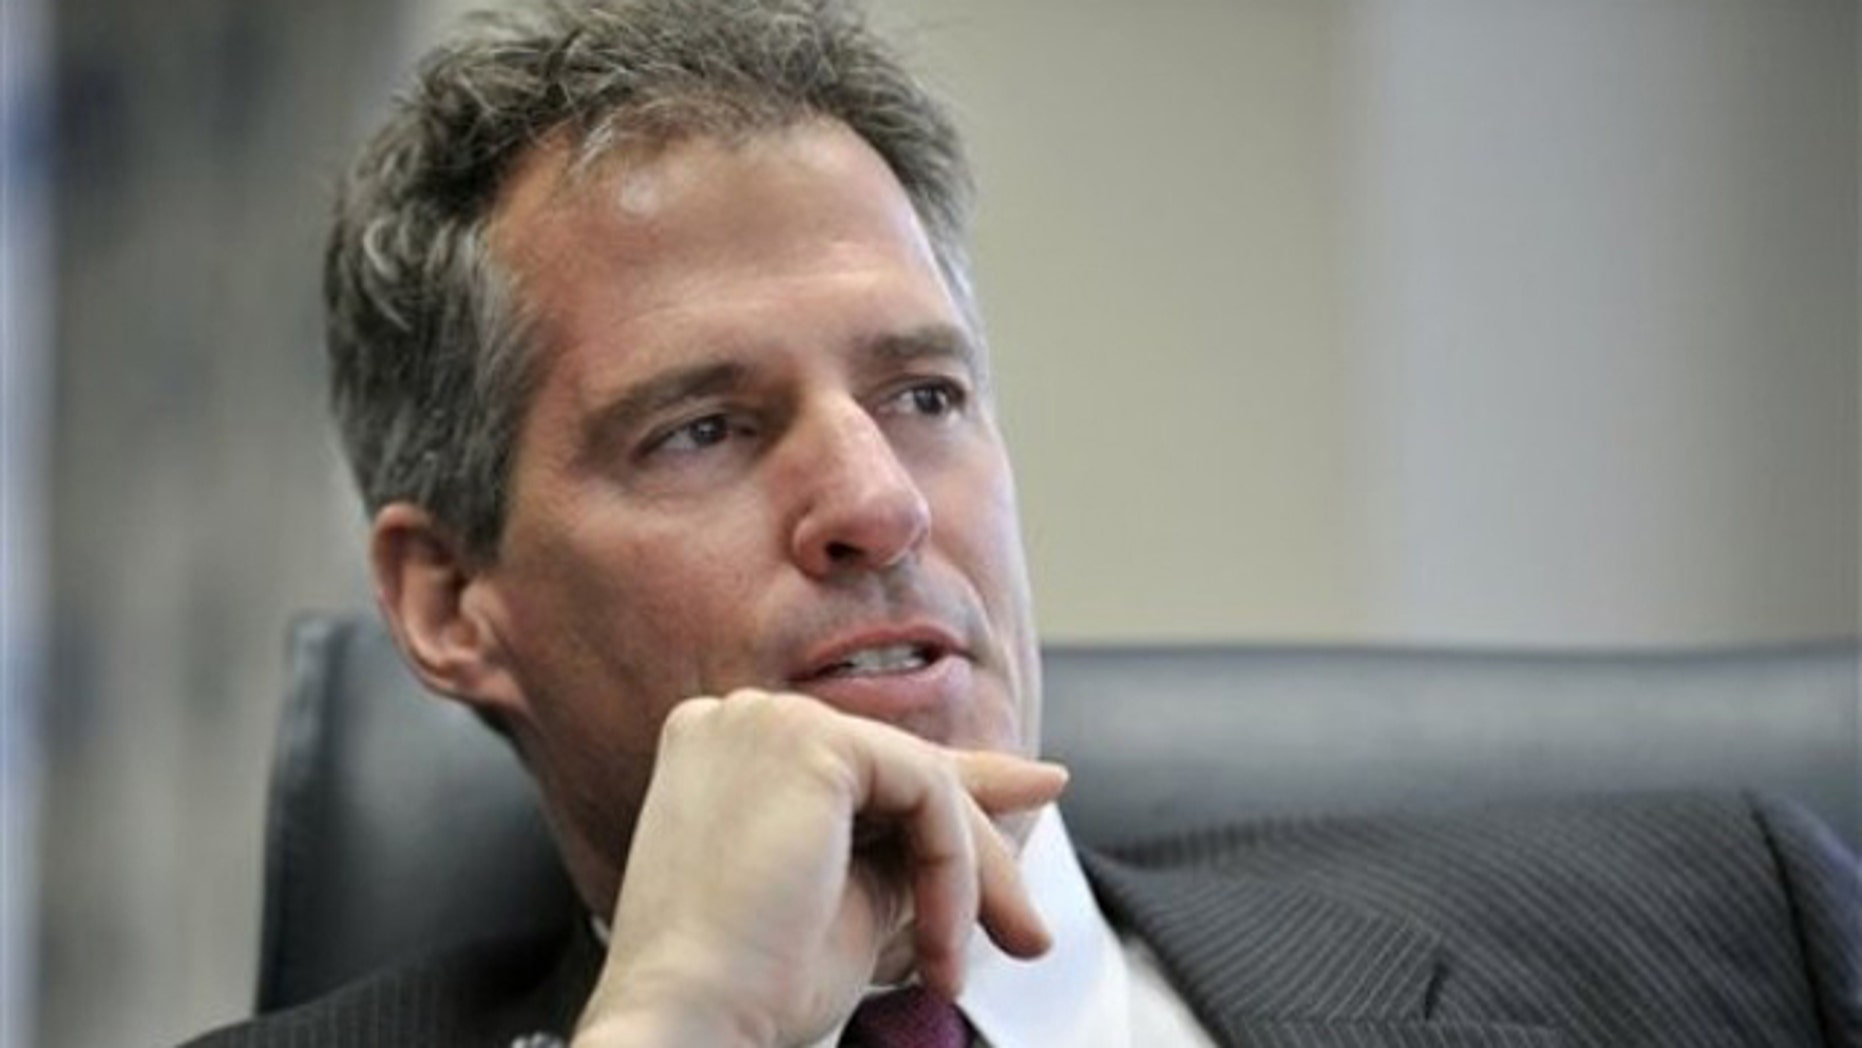 In this Jan. 11 photo, Sen. Scott Brown answers a question during an interview at his office in Boston.